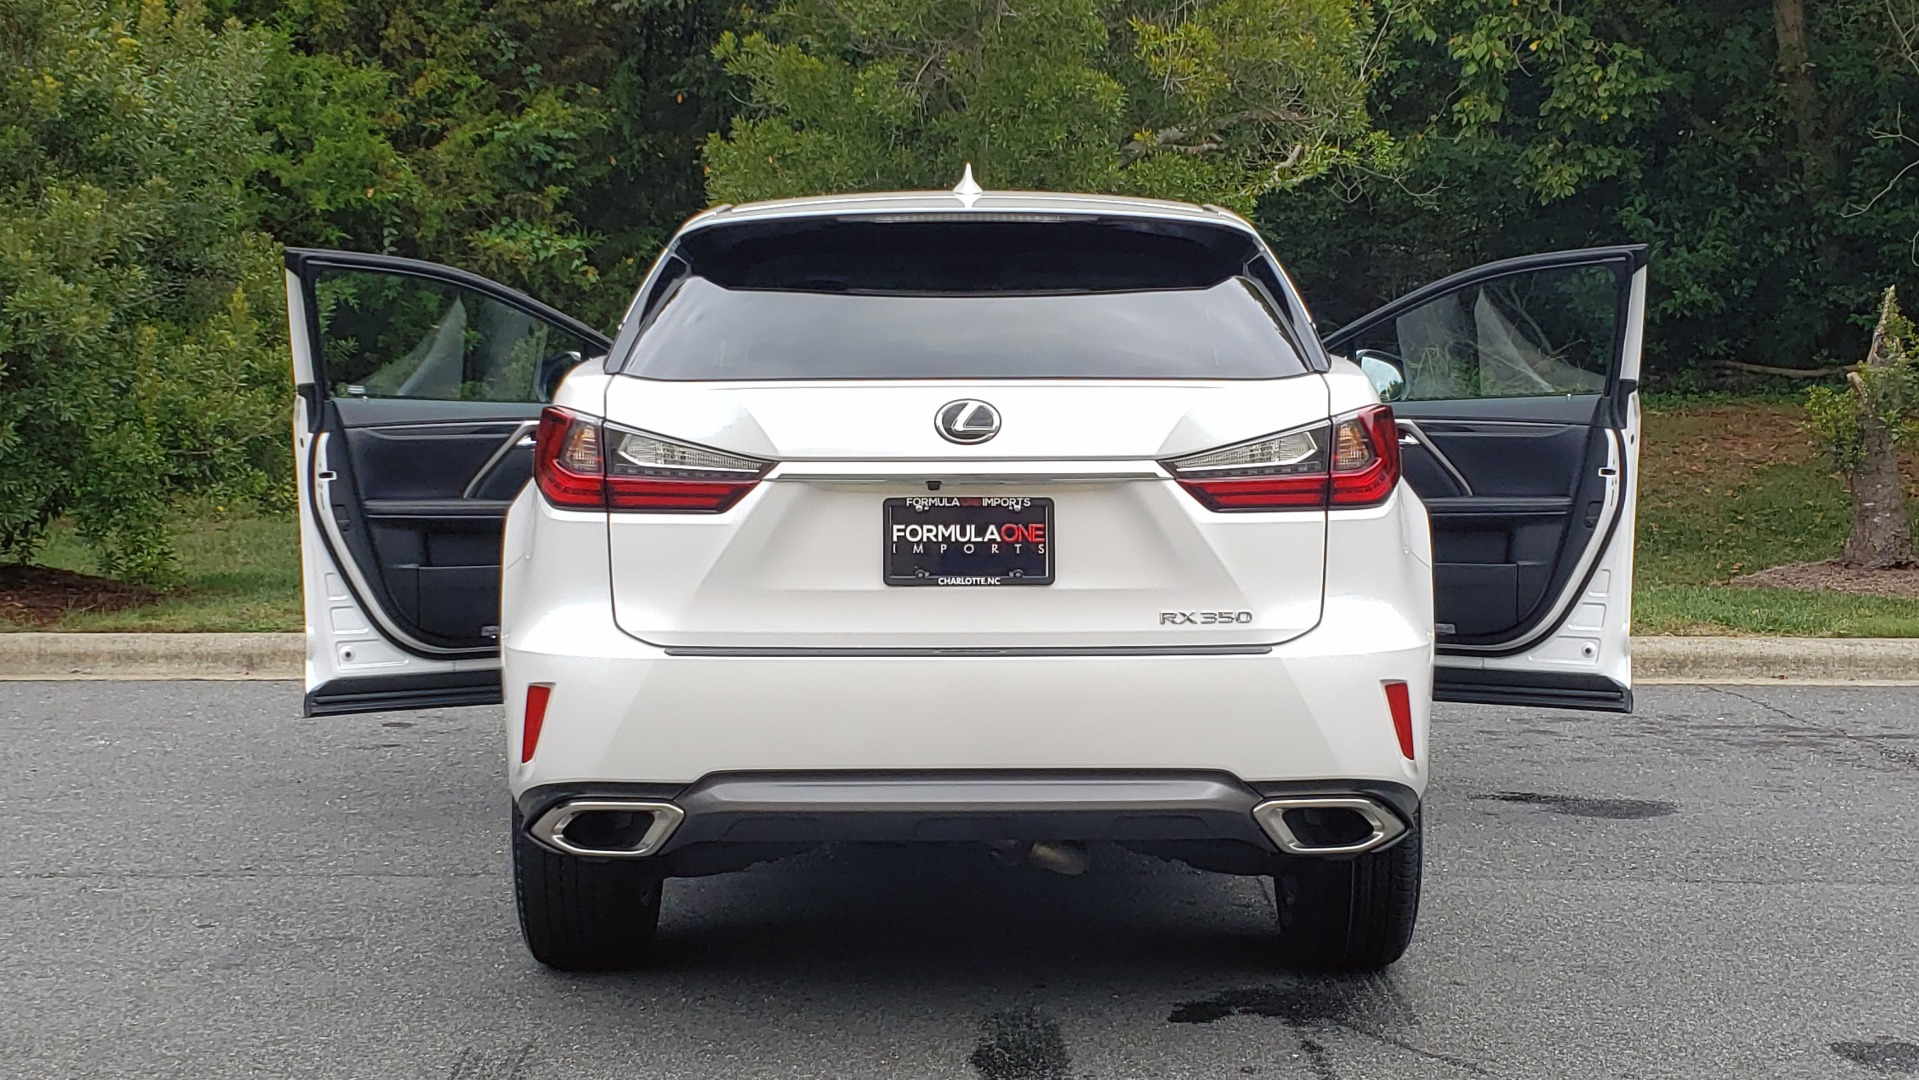 Used 2016 Lexus RX 350 FWD / 4-DR / 3.5L V6 / 8-SPD AUTO / LEATHER / REARVIEW for sale $31,995 at Formula Imports in Charlotte NC 28227 30